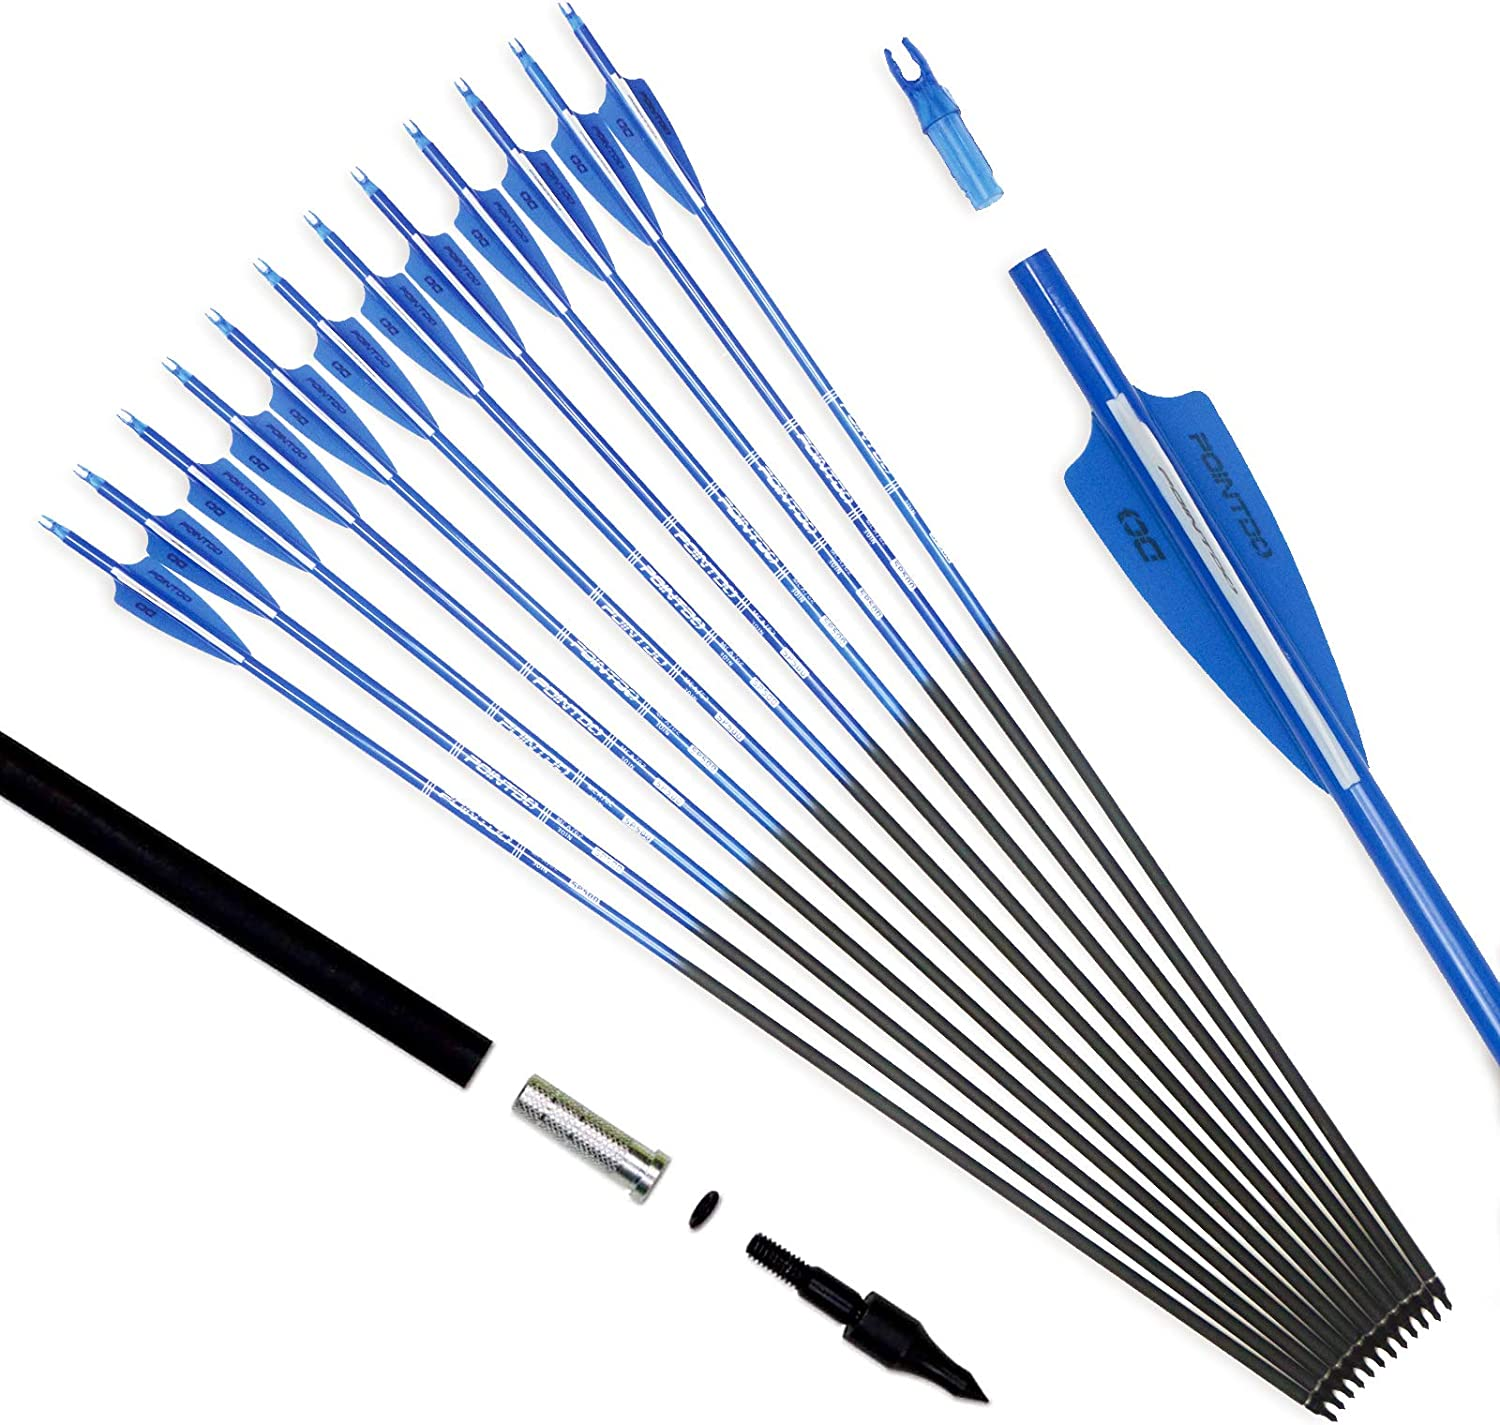 Our shop OFFers the best service Pointdo Max 69% OFF 30inch Carbon Arrow Fluorescence Color and Pra Targeting